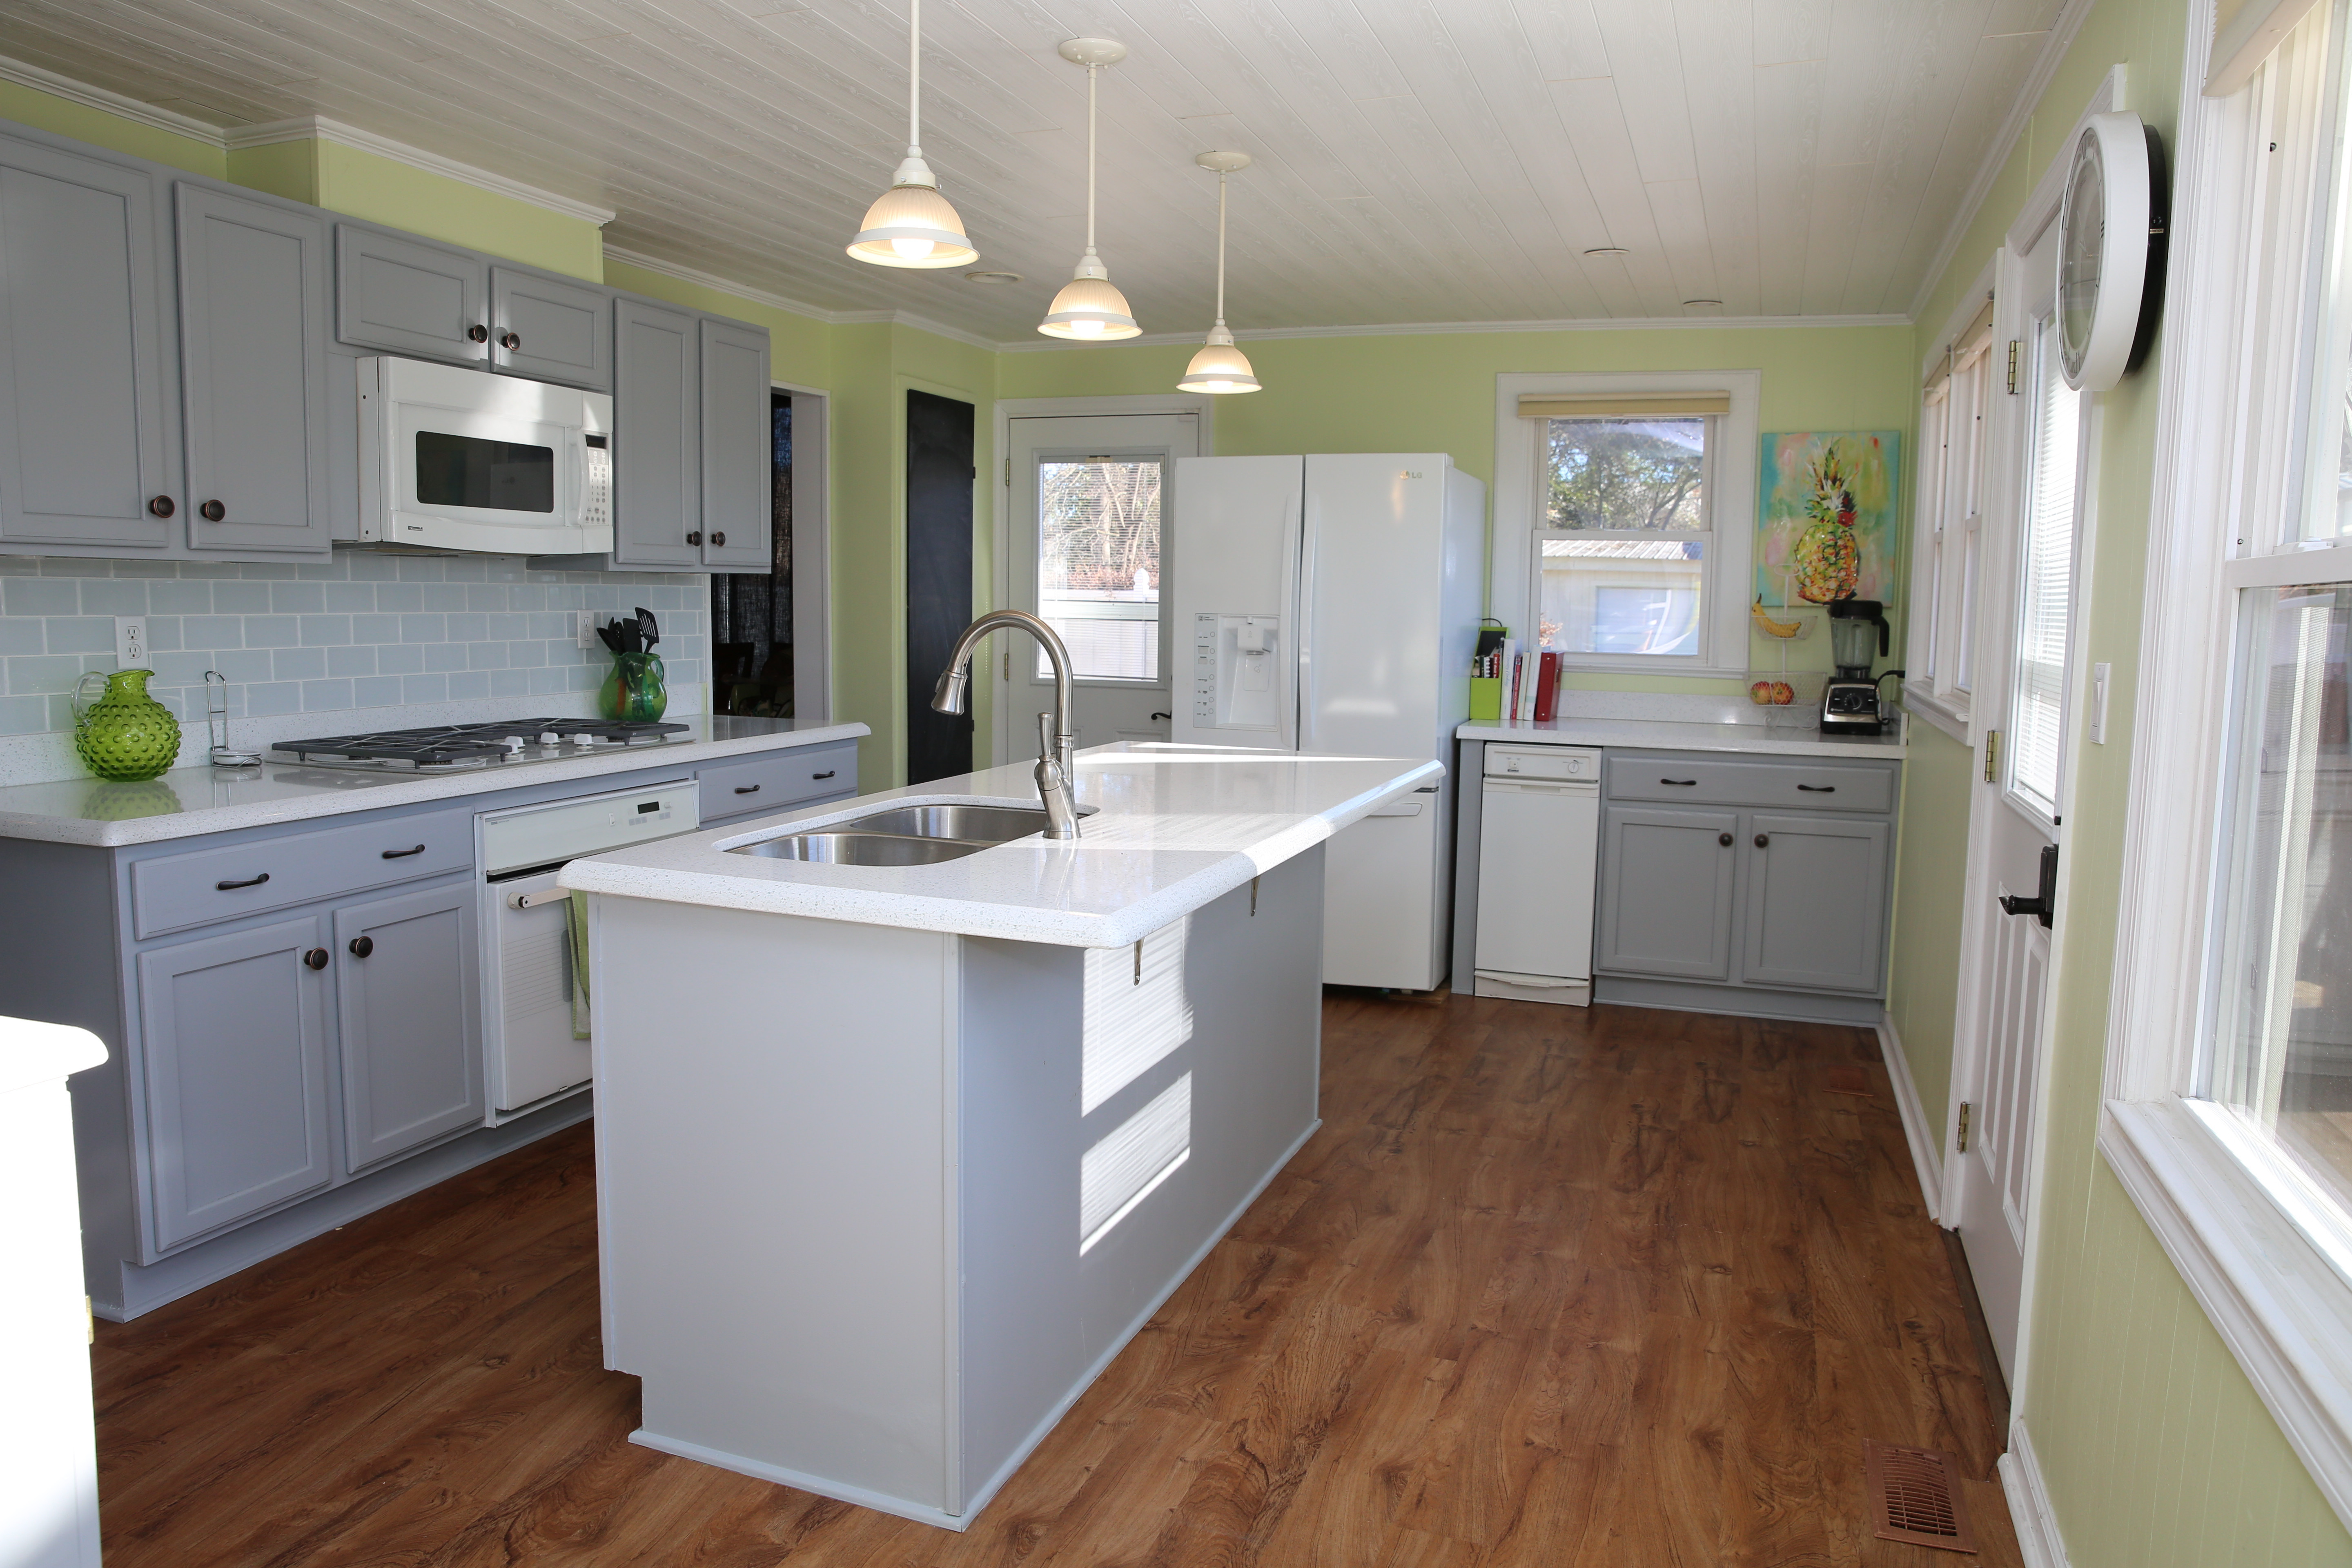 price per square foot hardwood floors installed of hardwood floor installation cost per sq ft fresh 123 w church street intended for hardwood floor installation cost per sq ft fresh 123 w church street the property shop international